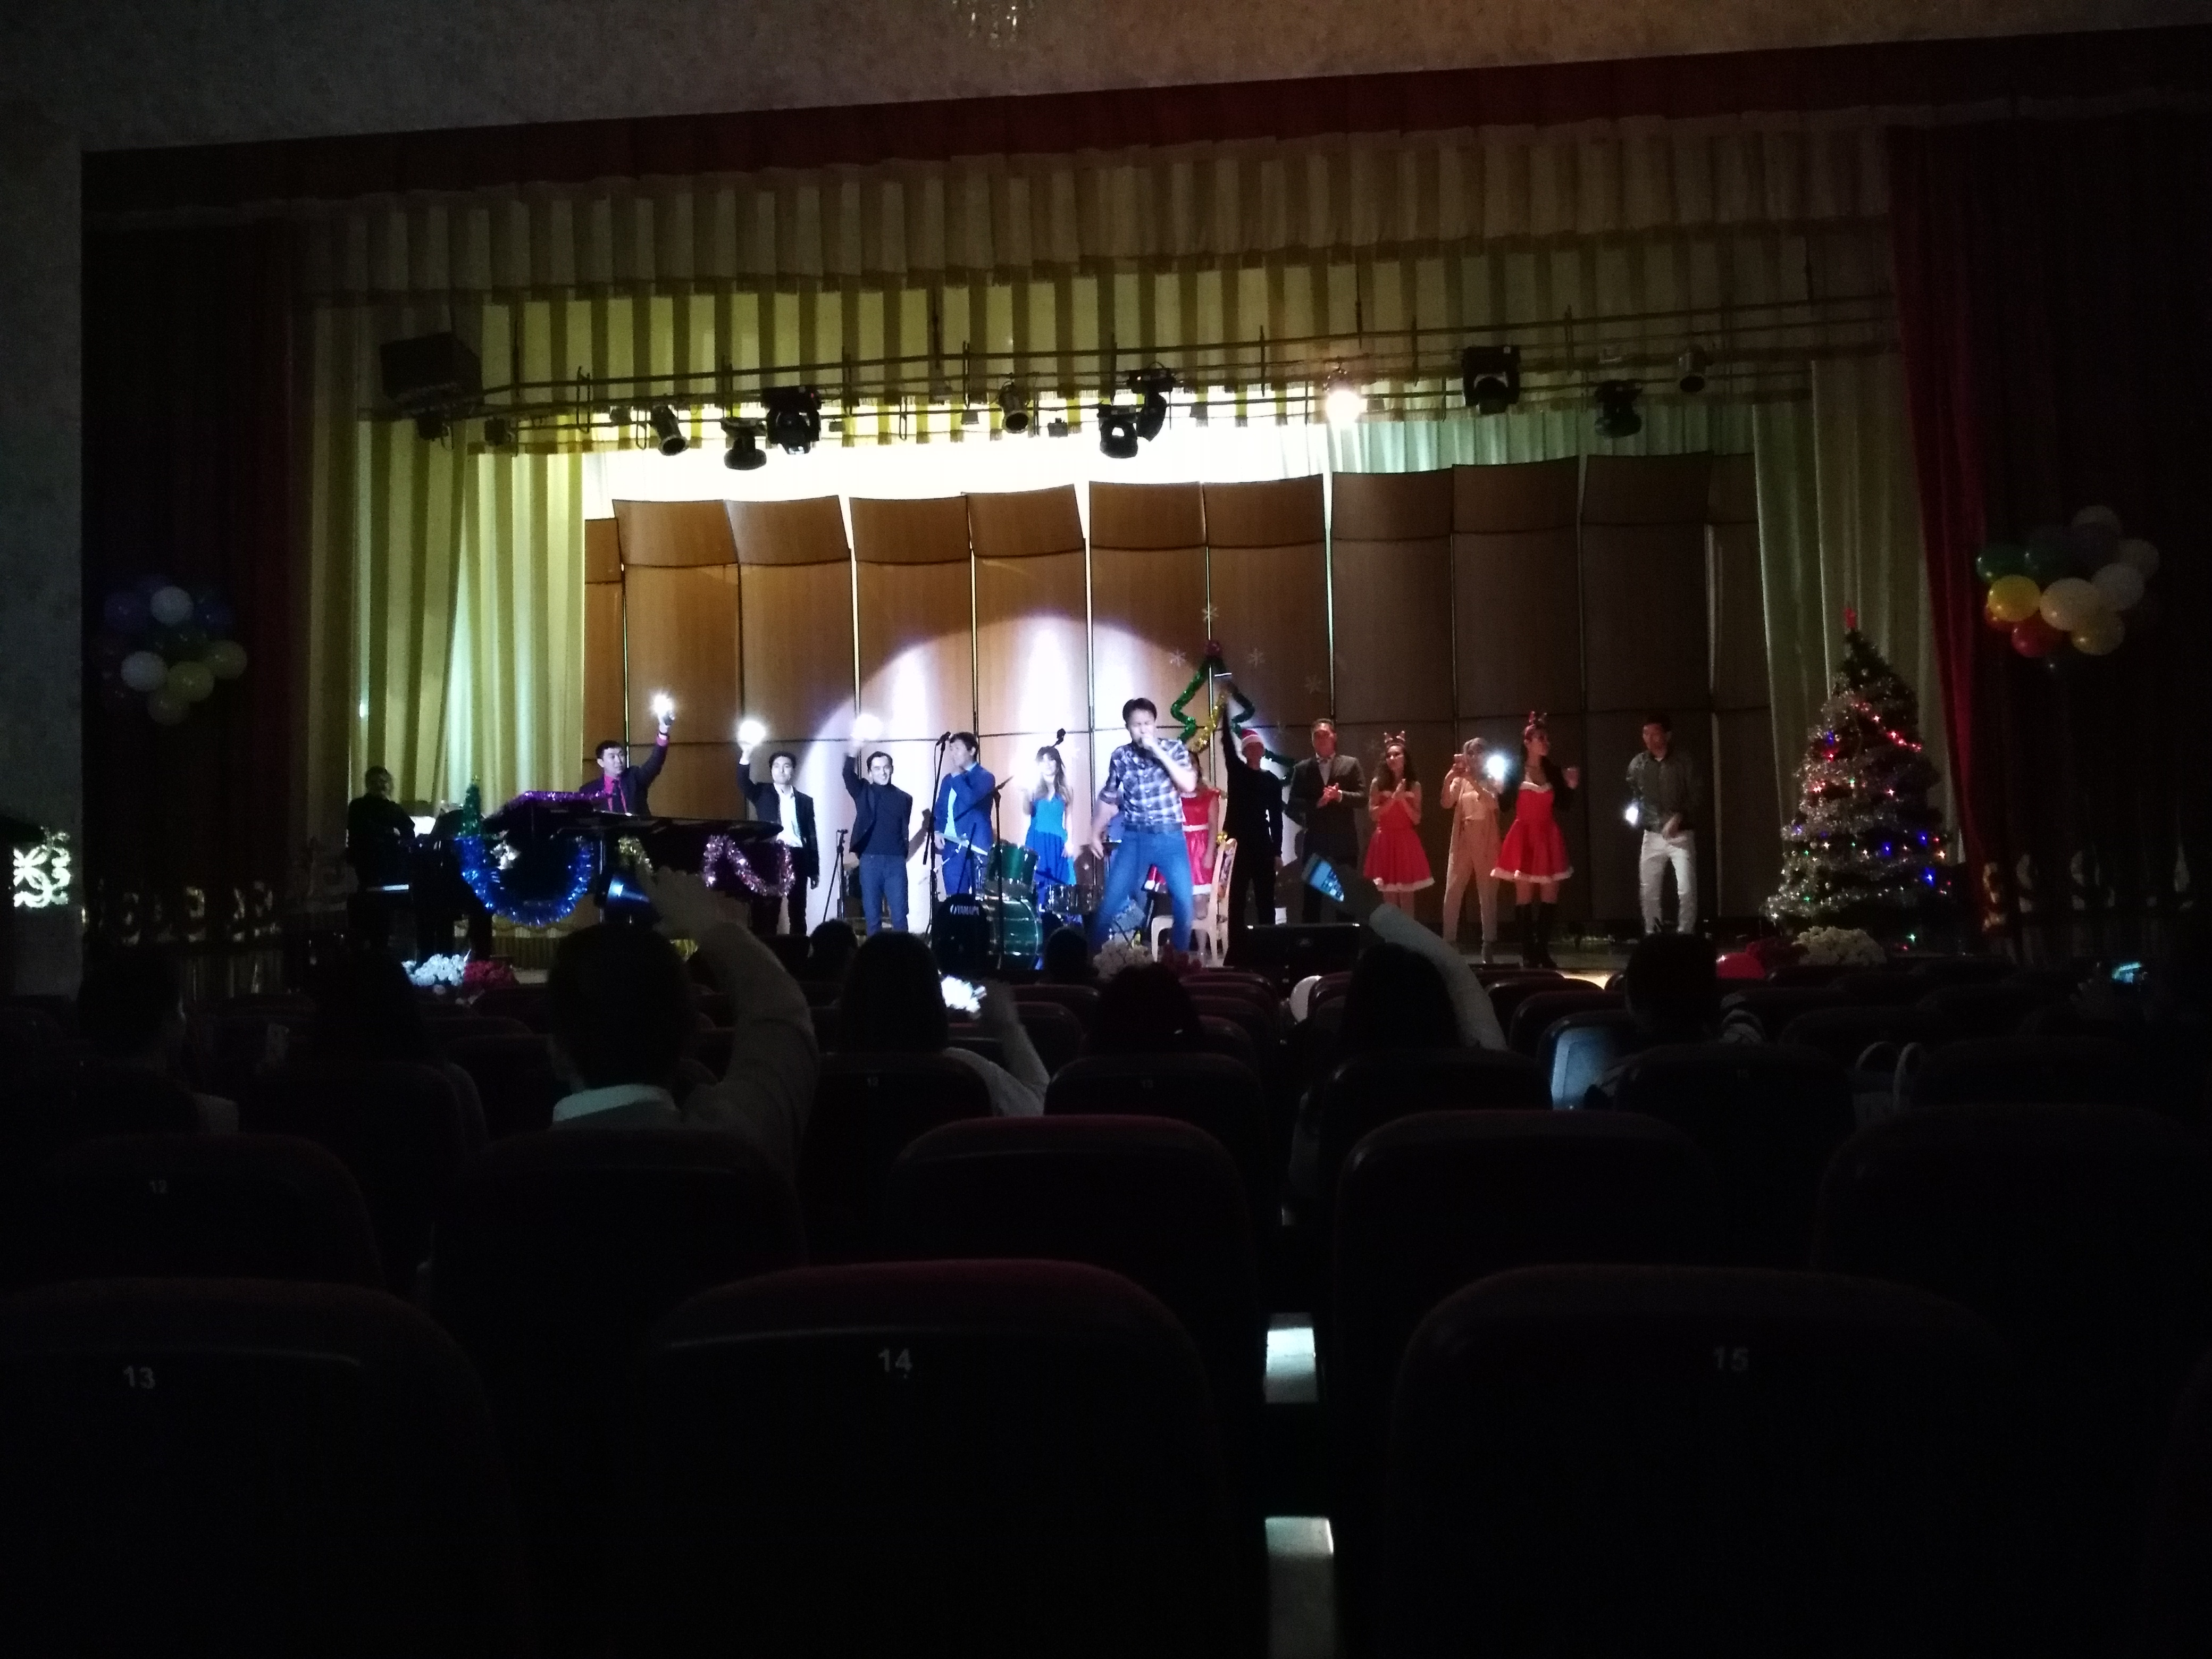 The grand finale of the Christmas concert at the Kyrgyz National Conservatory.